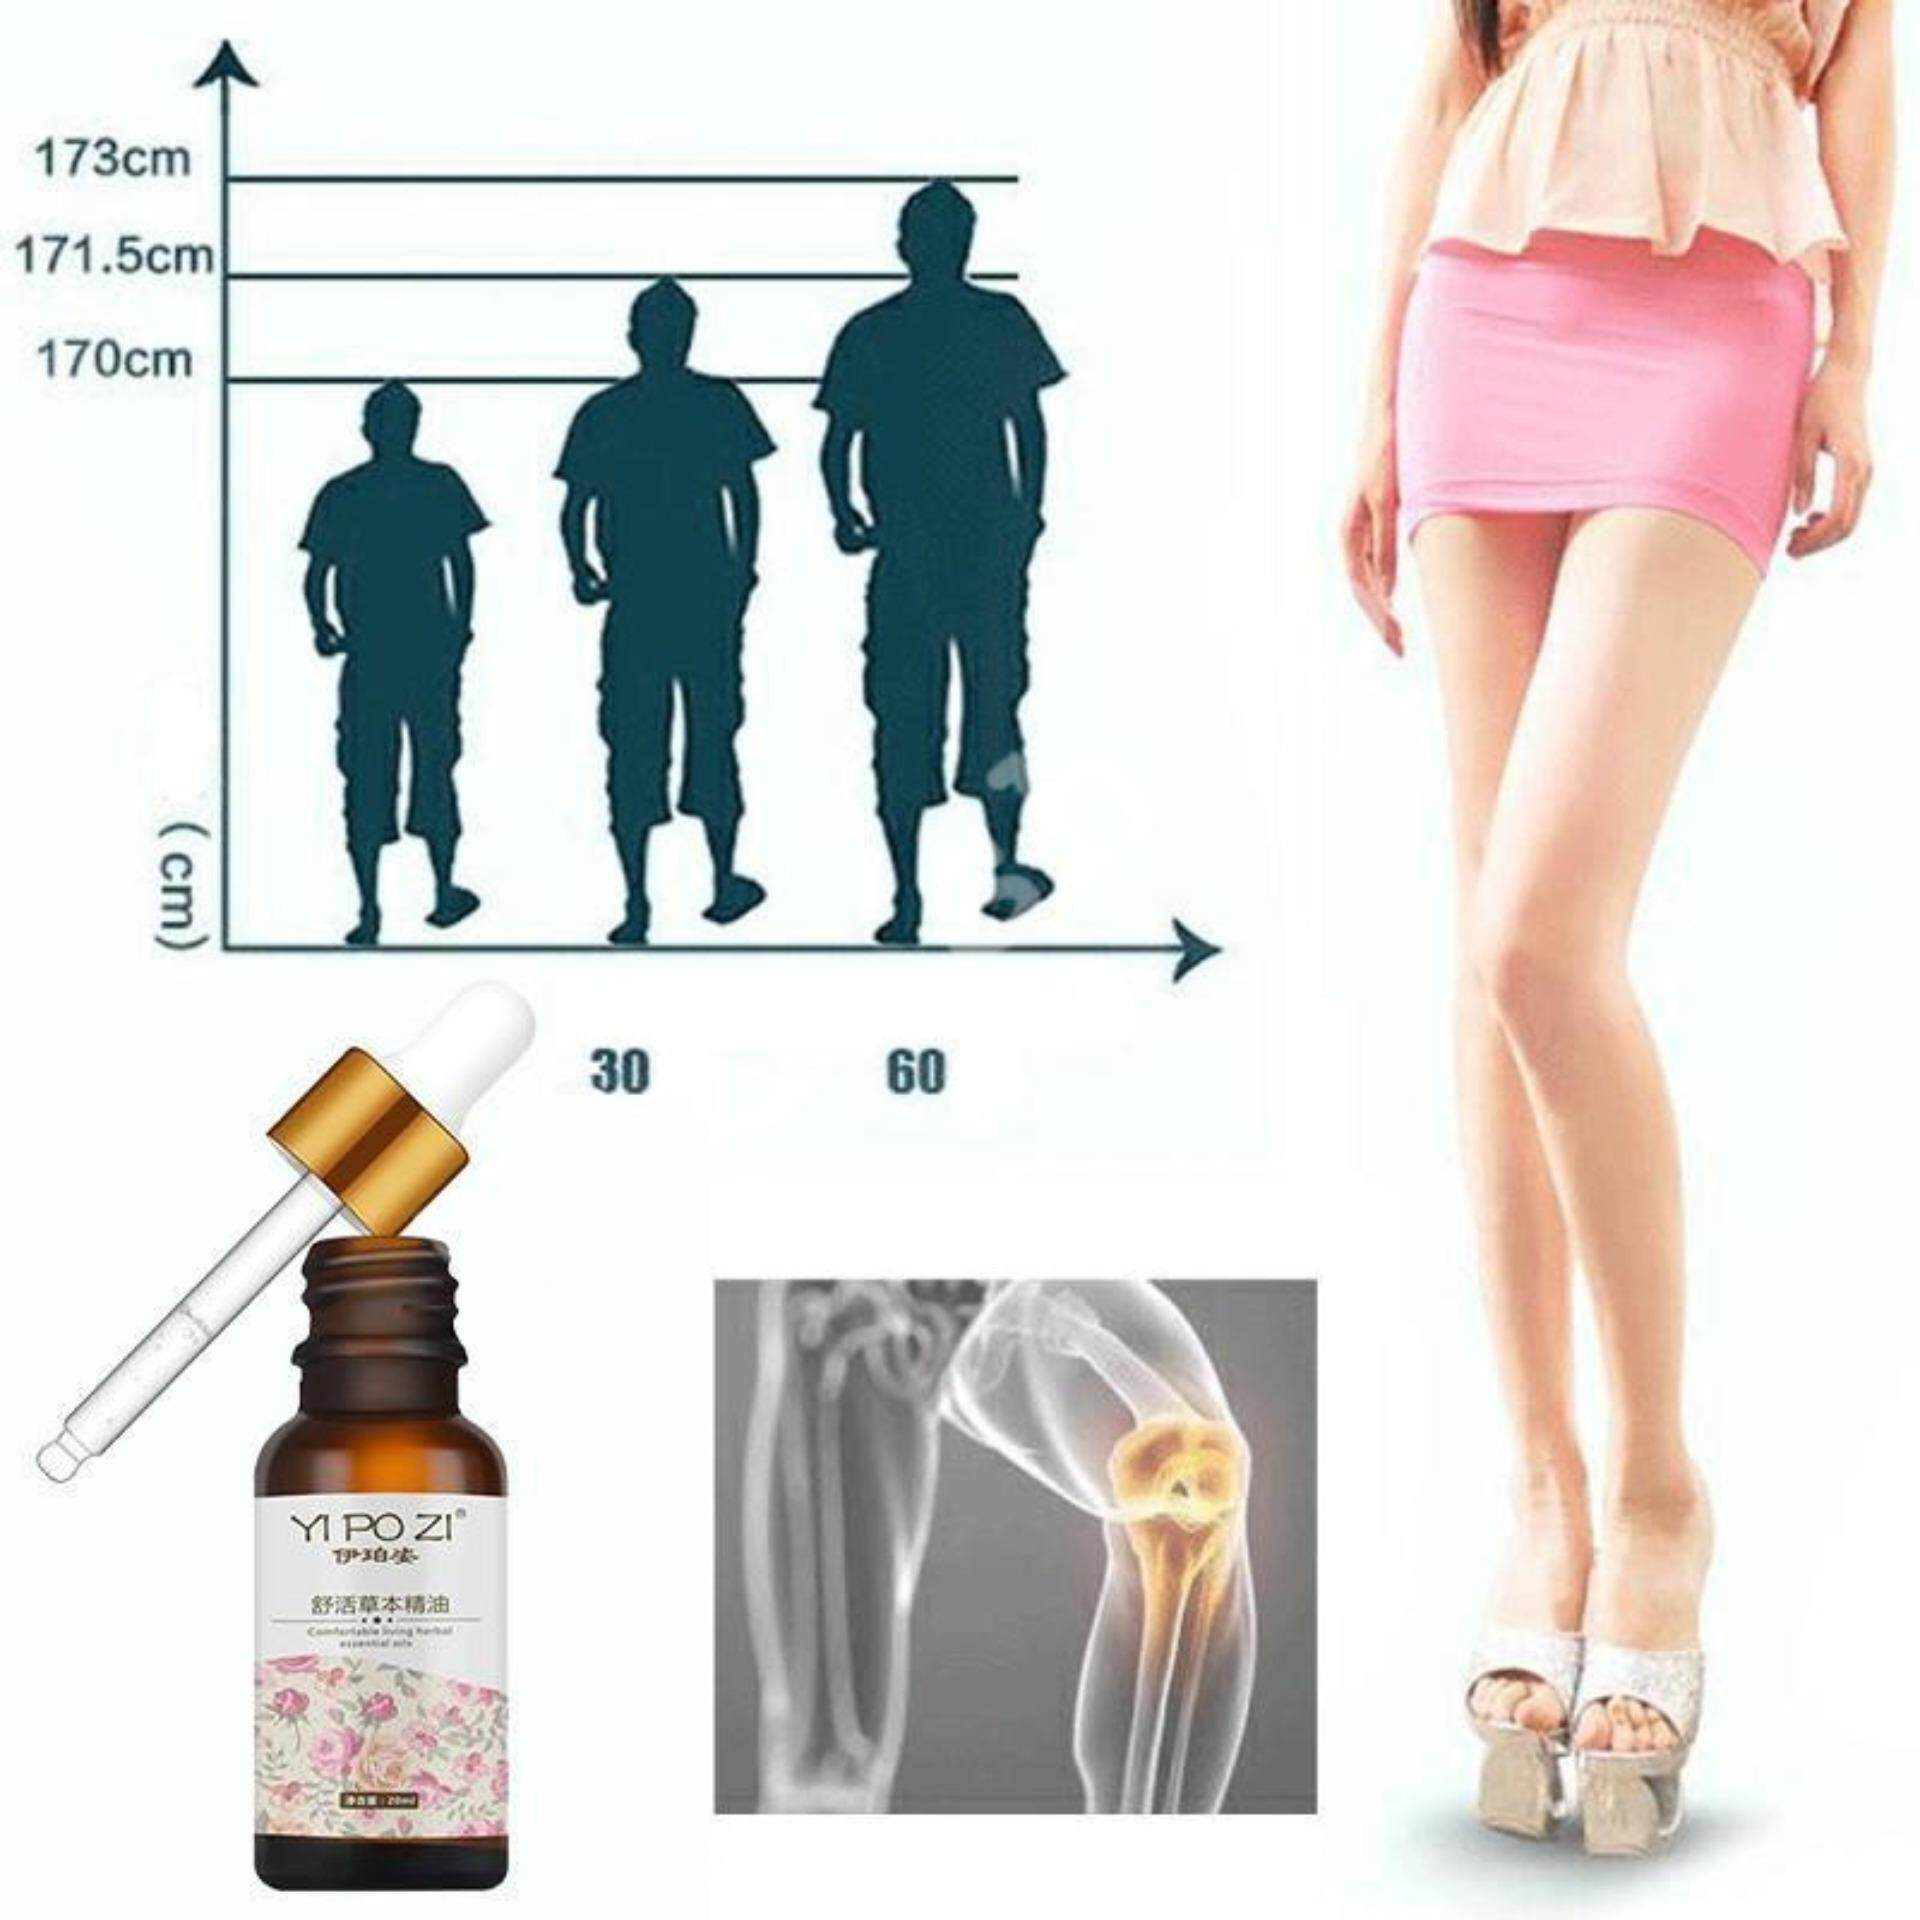 【Free gift】Herbal Height Natural Bone Growth Essential Oil Body Grow Taller Soothing Foot Health Care Promot Bone Growth Increasing Height 20ML